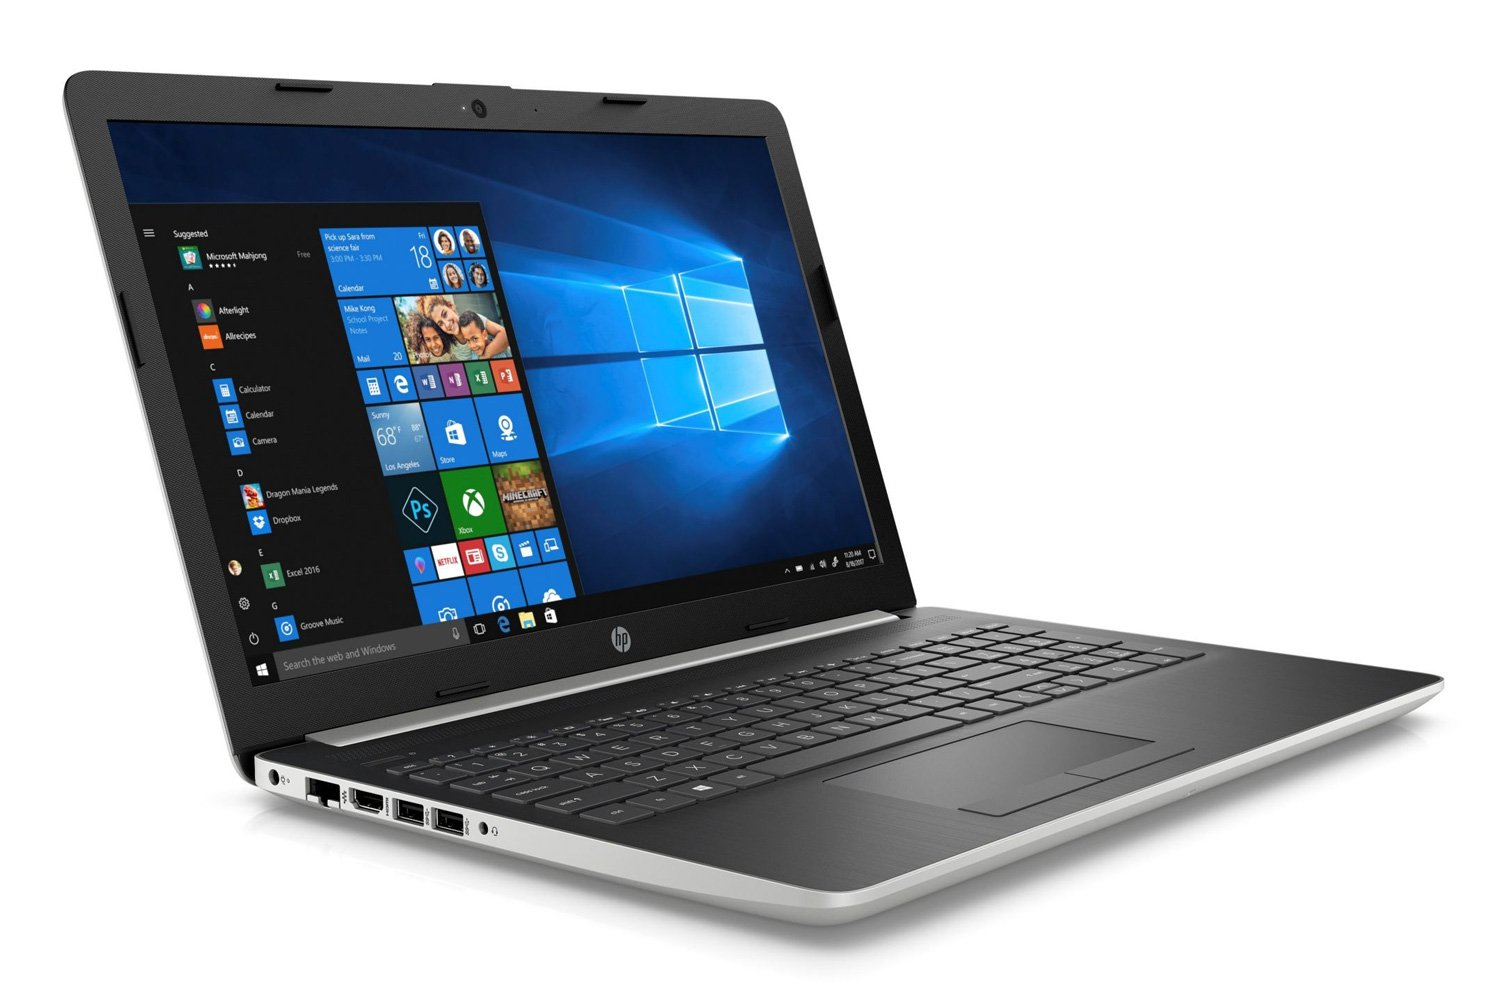 Image 1 : [Promo] Le notebook HP 15-db0011nf à 509 €